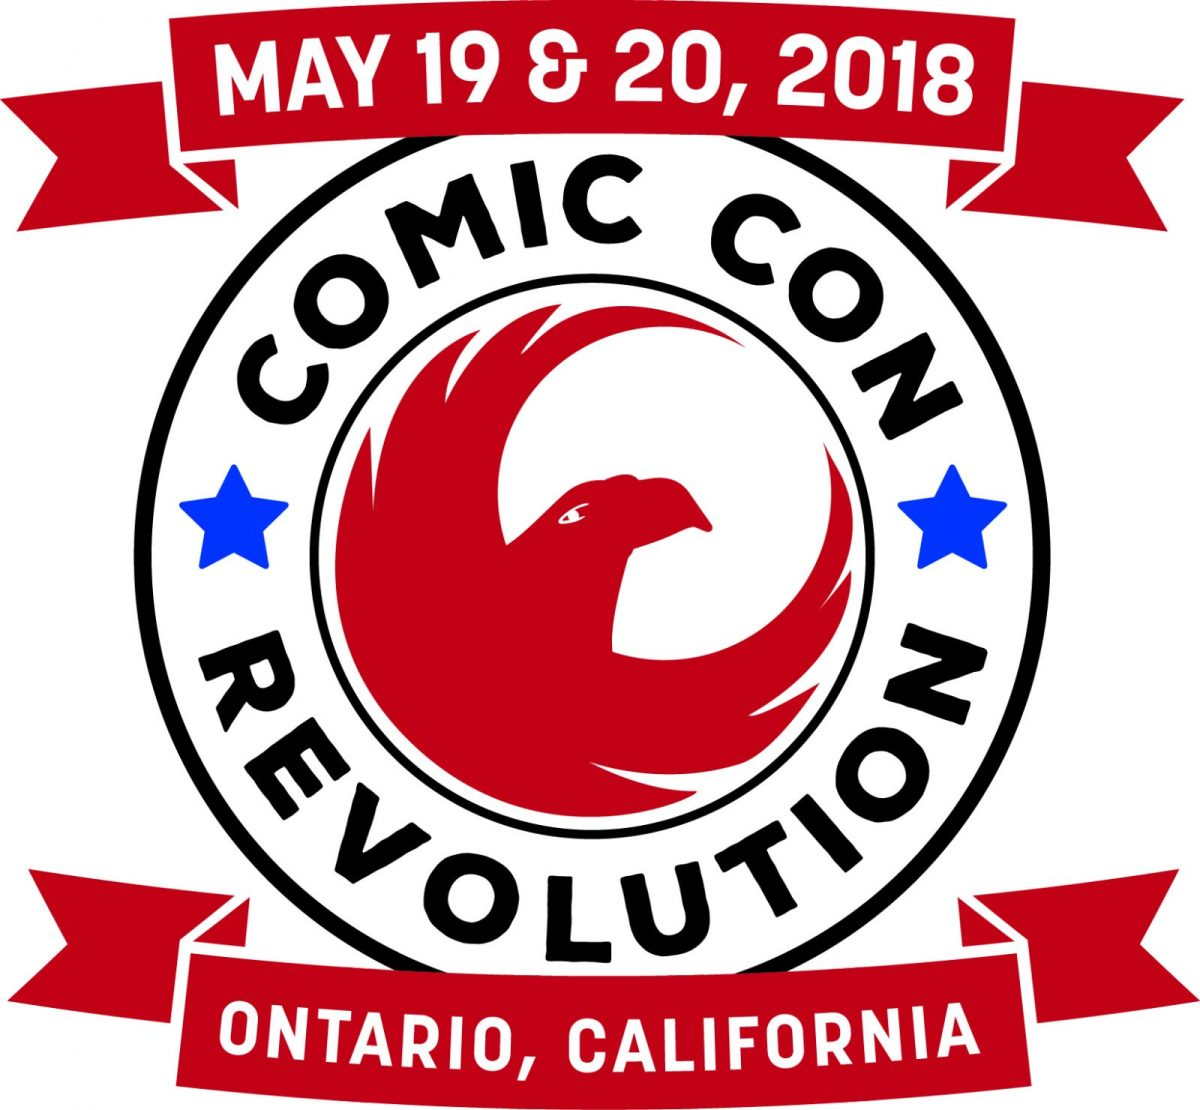 BOF at Comic Con Revolution Ontario 2018 (and More)!